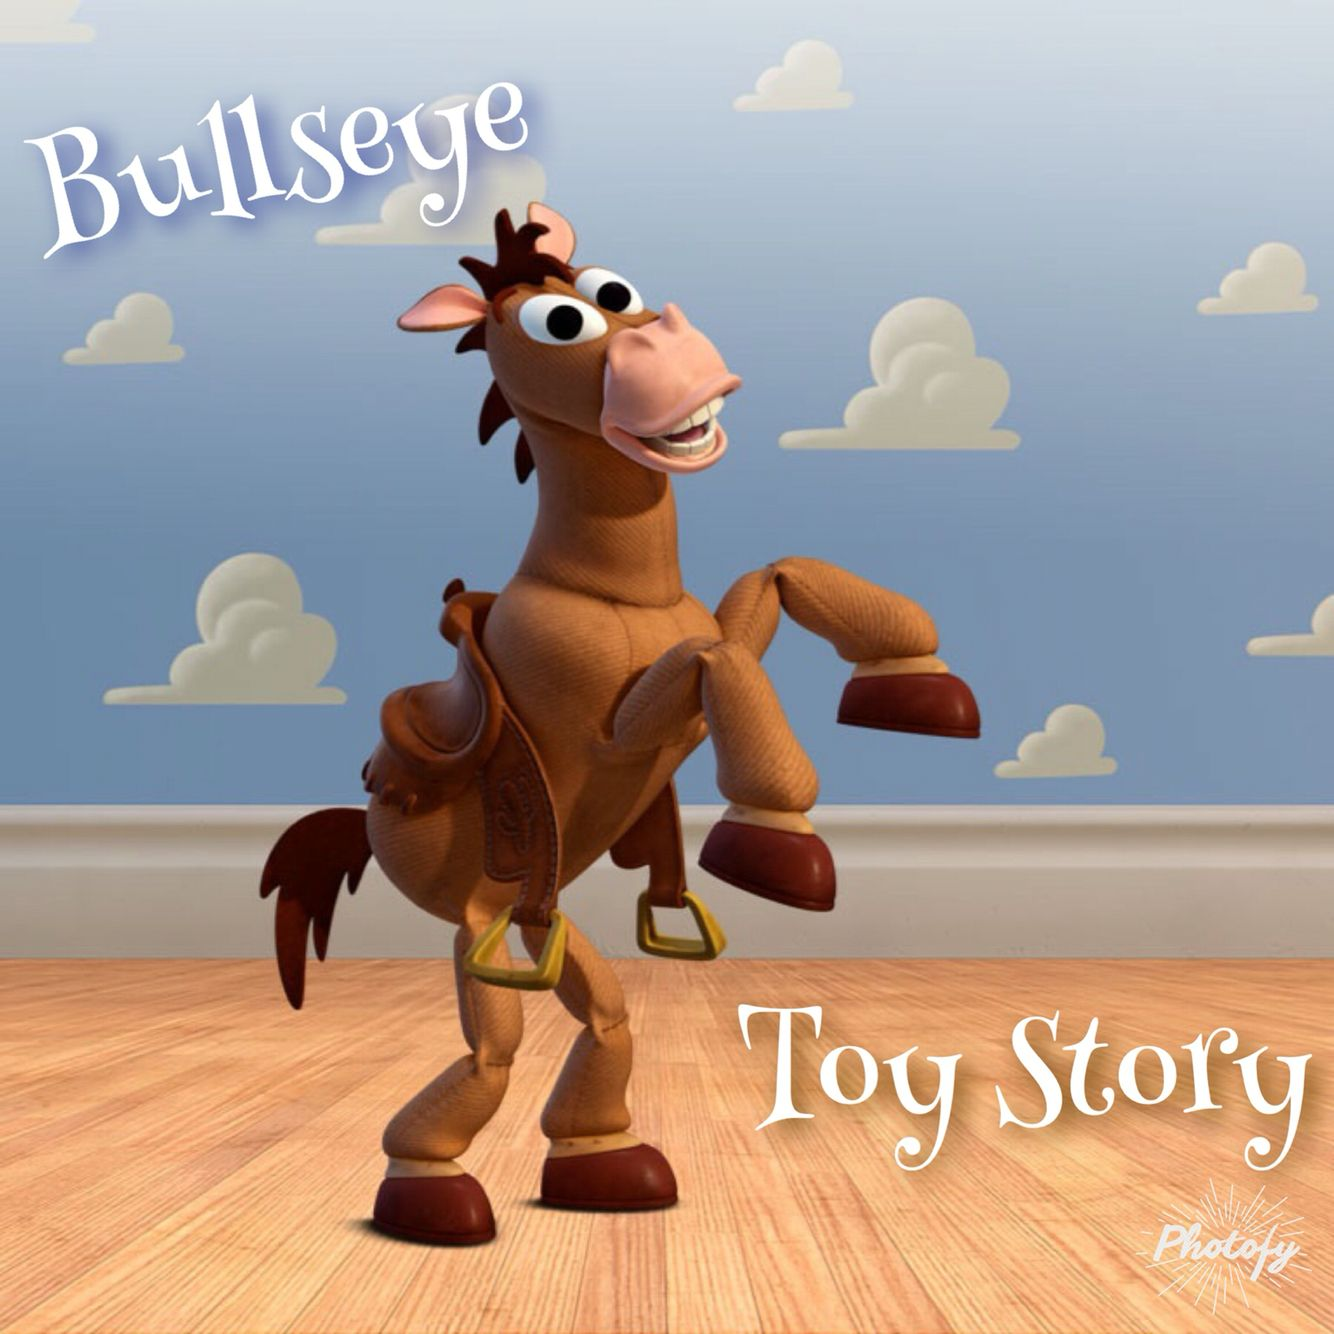 Bullseye Woody S Horse In Toy Story 2 And Toy Story 3 Jessie